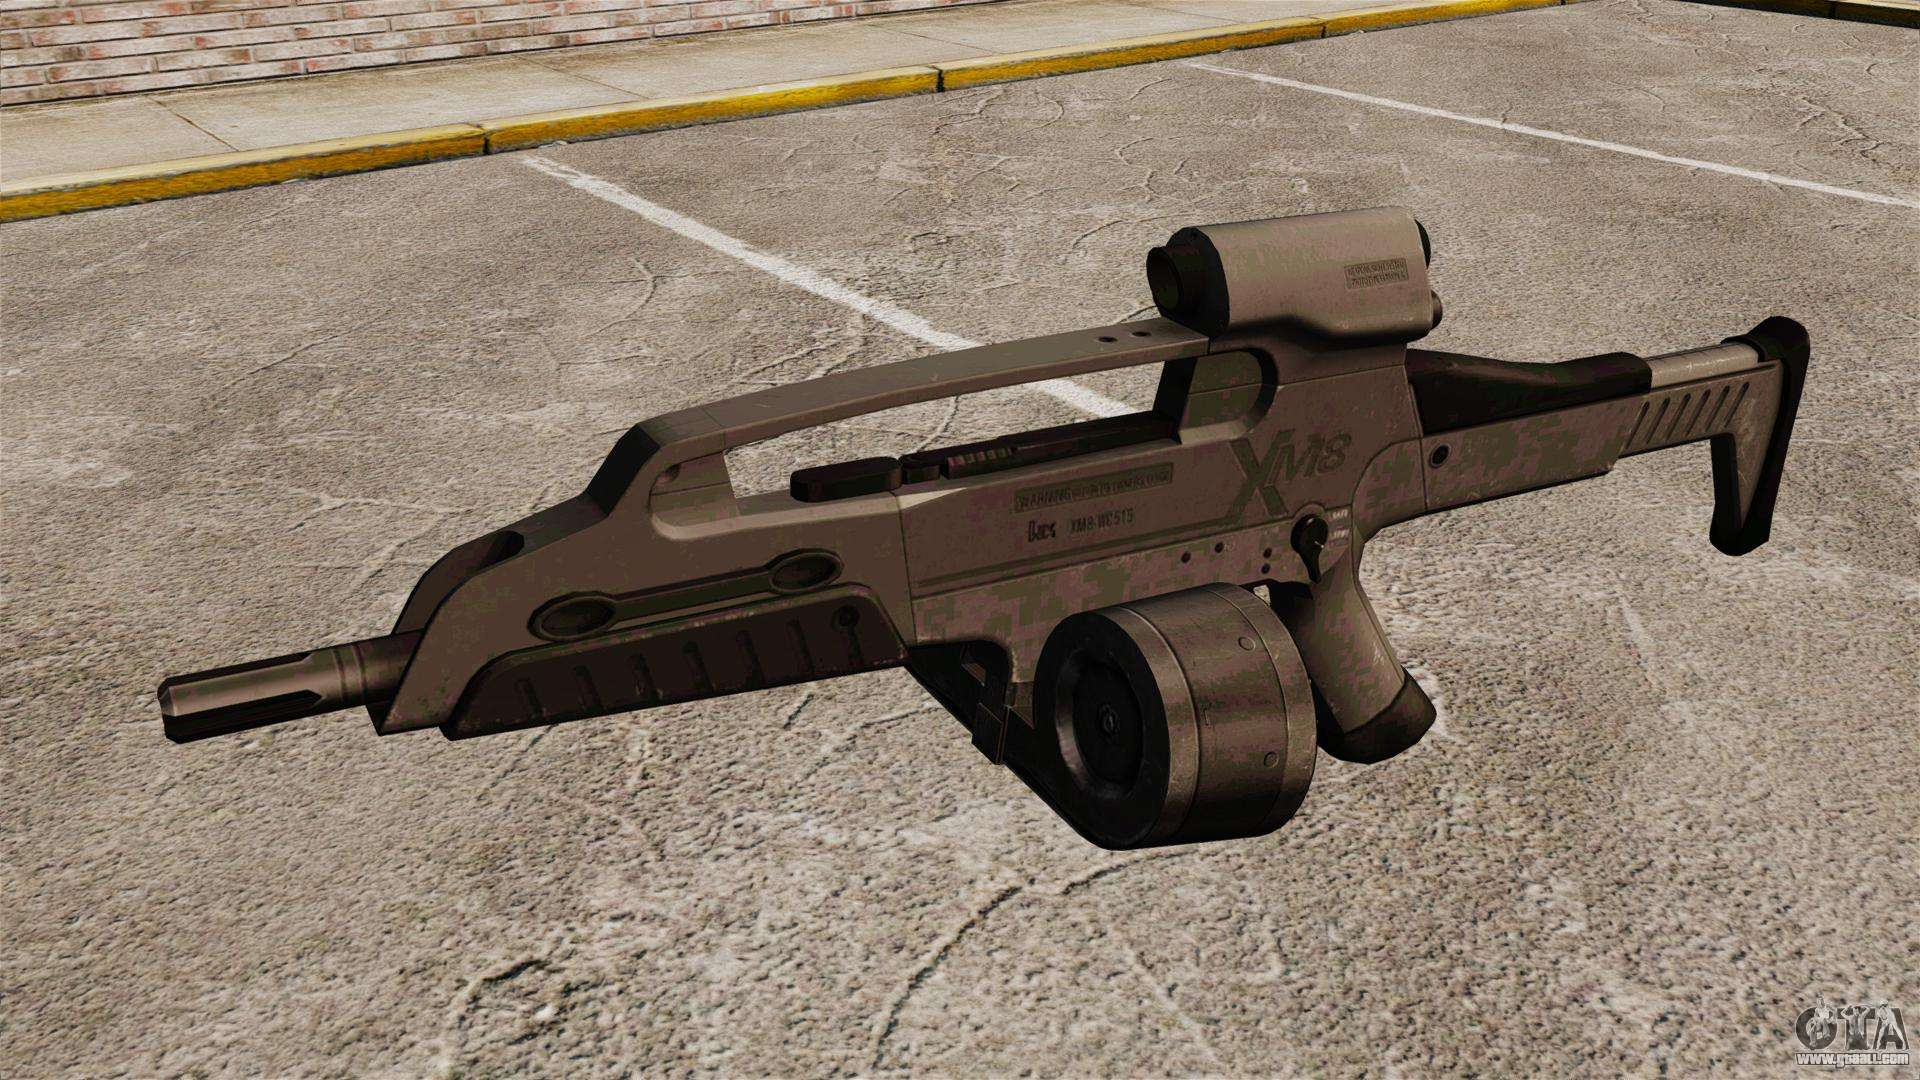 Automatic hk xm8 v3 for gta 4 for Portent g3 sw 12